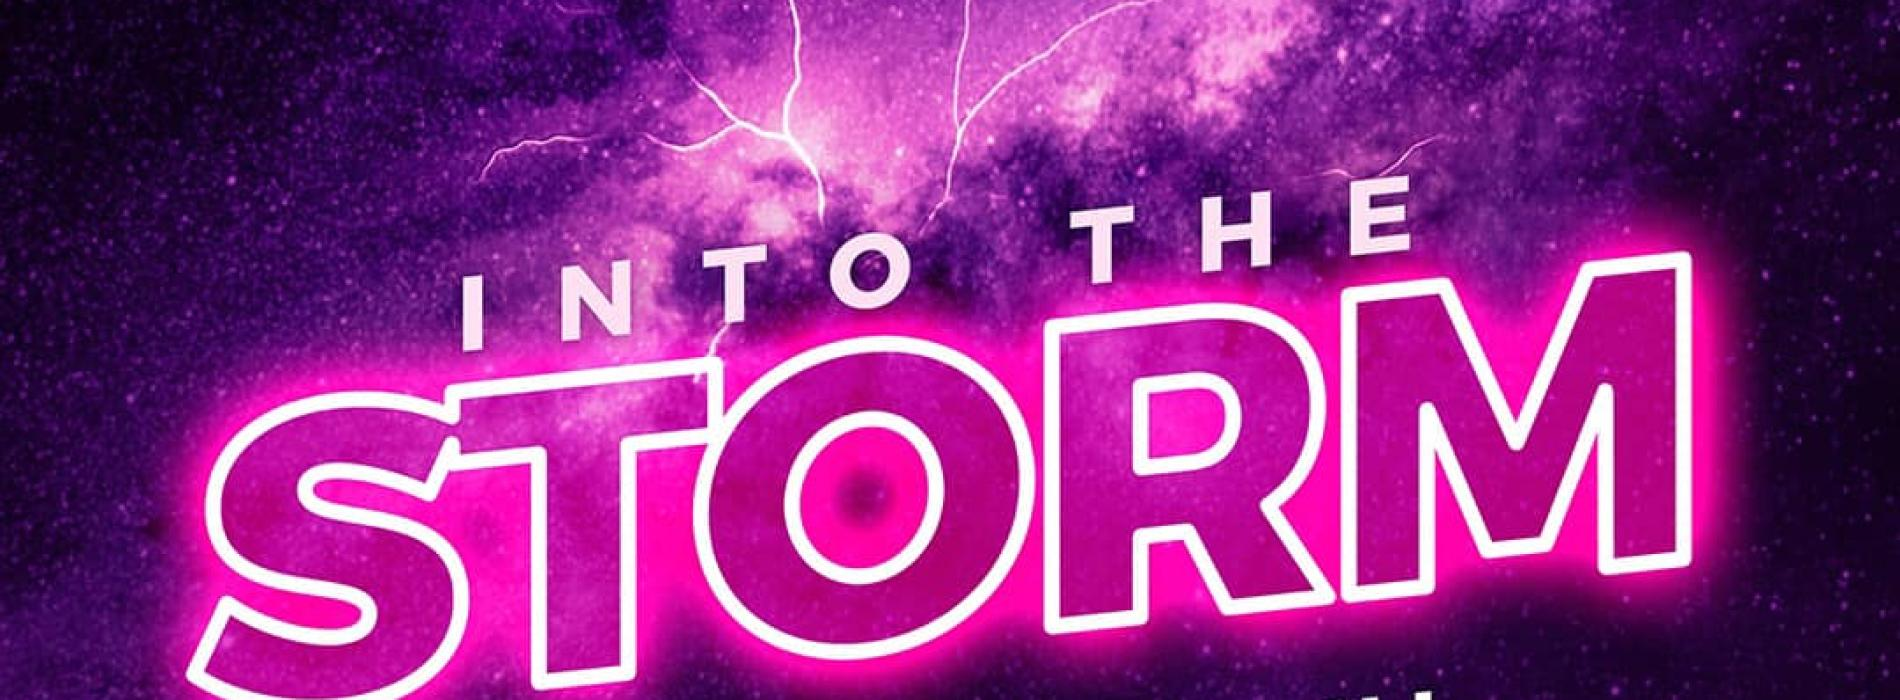 New Music : Deyo & Janani Ft Questions416 – Into The Storm